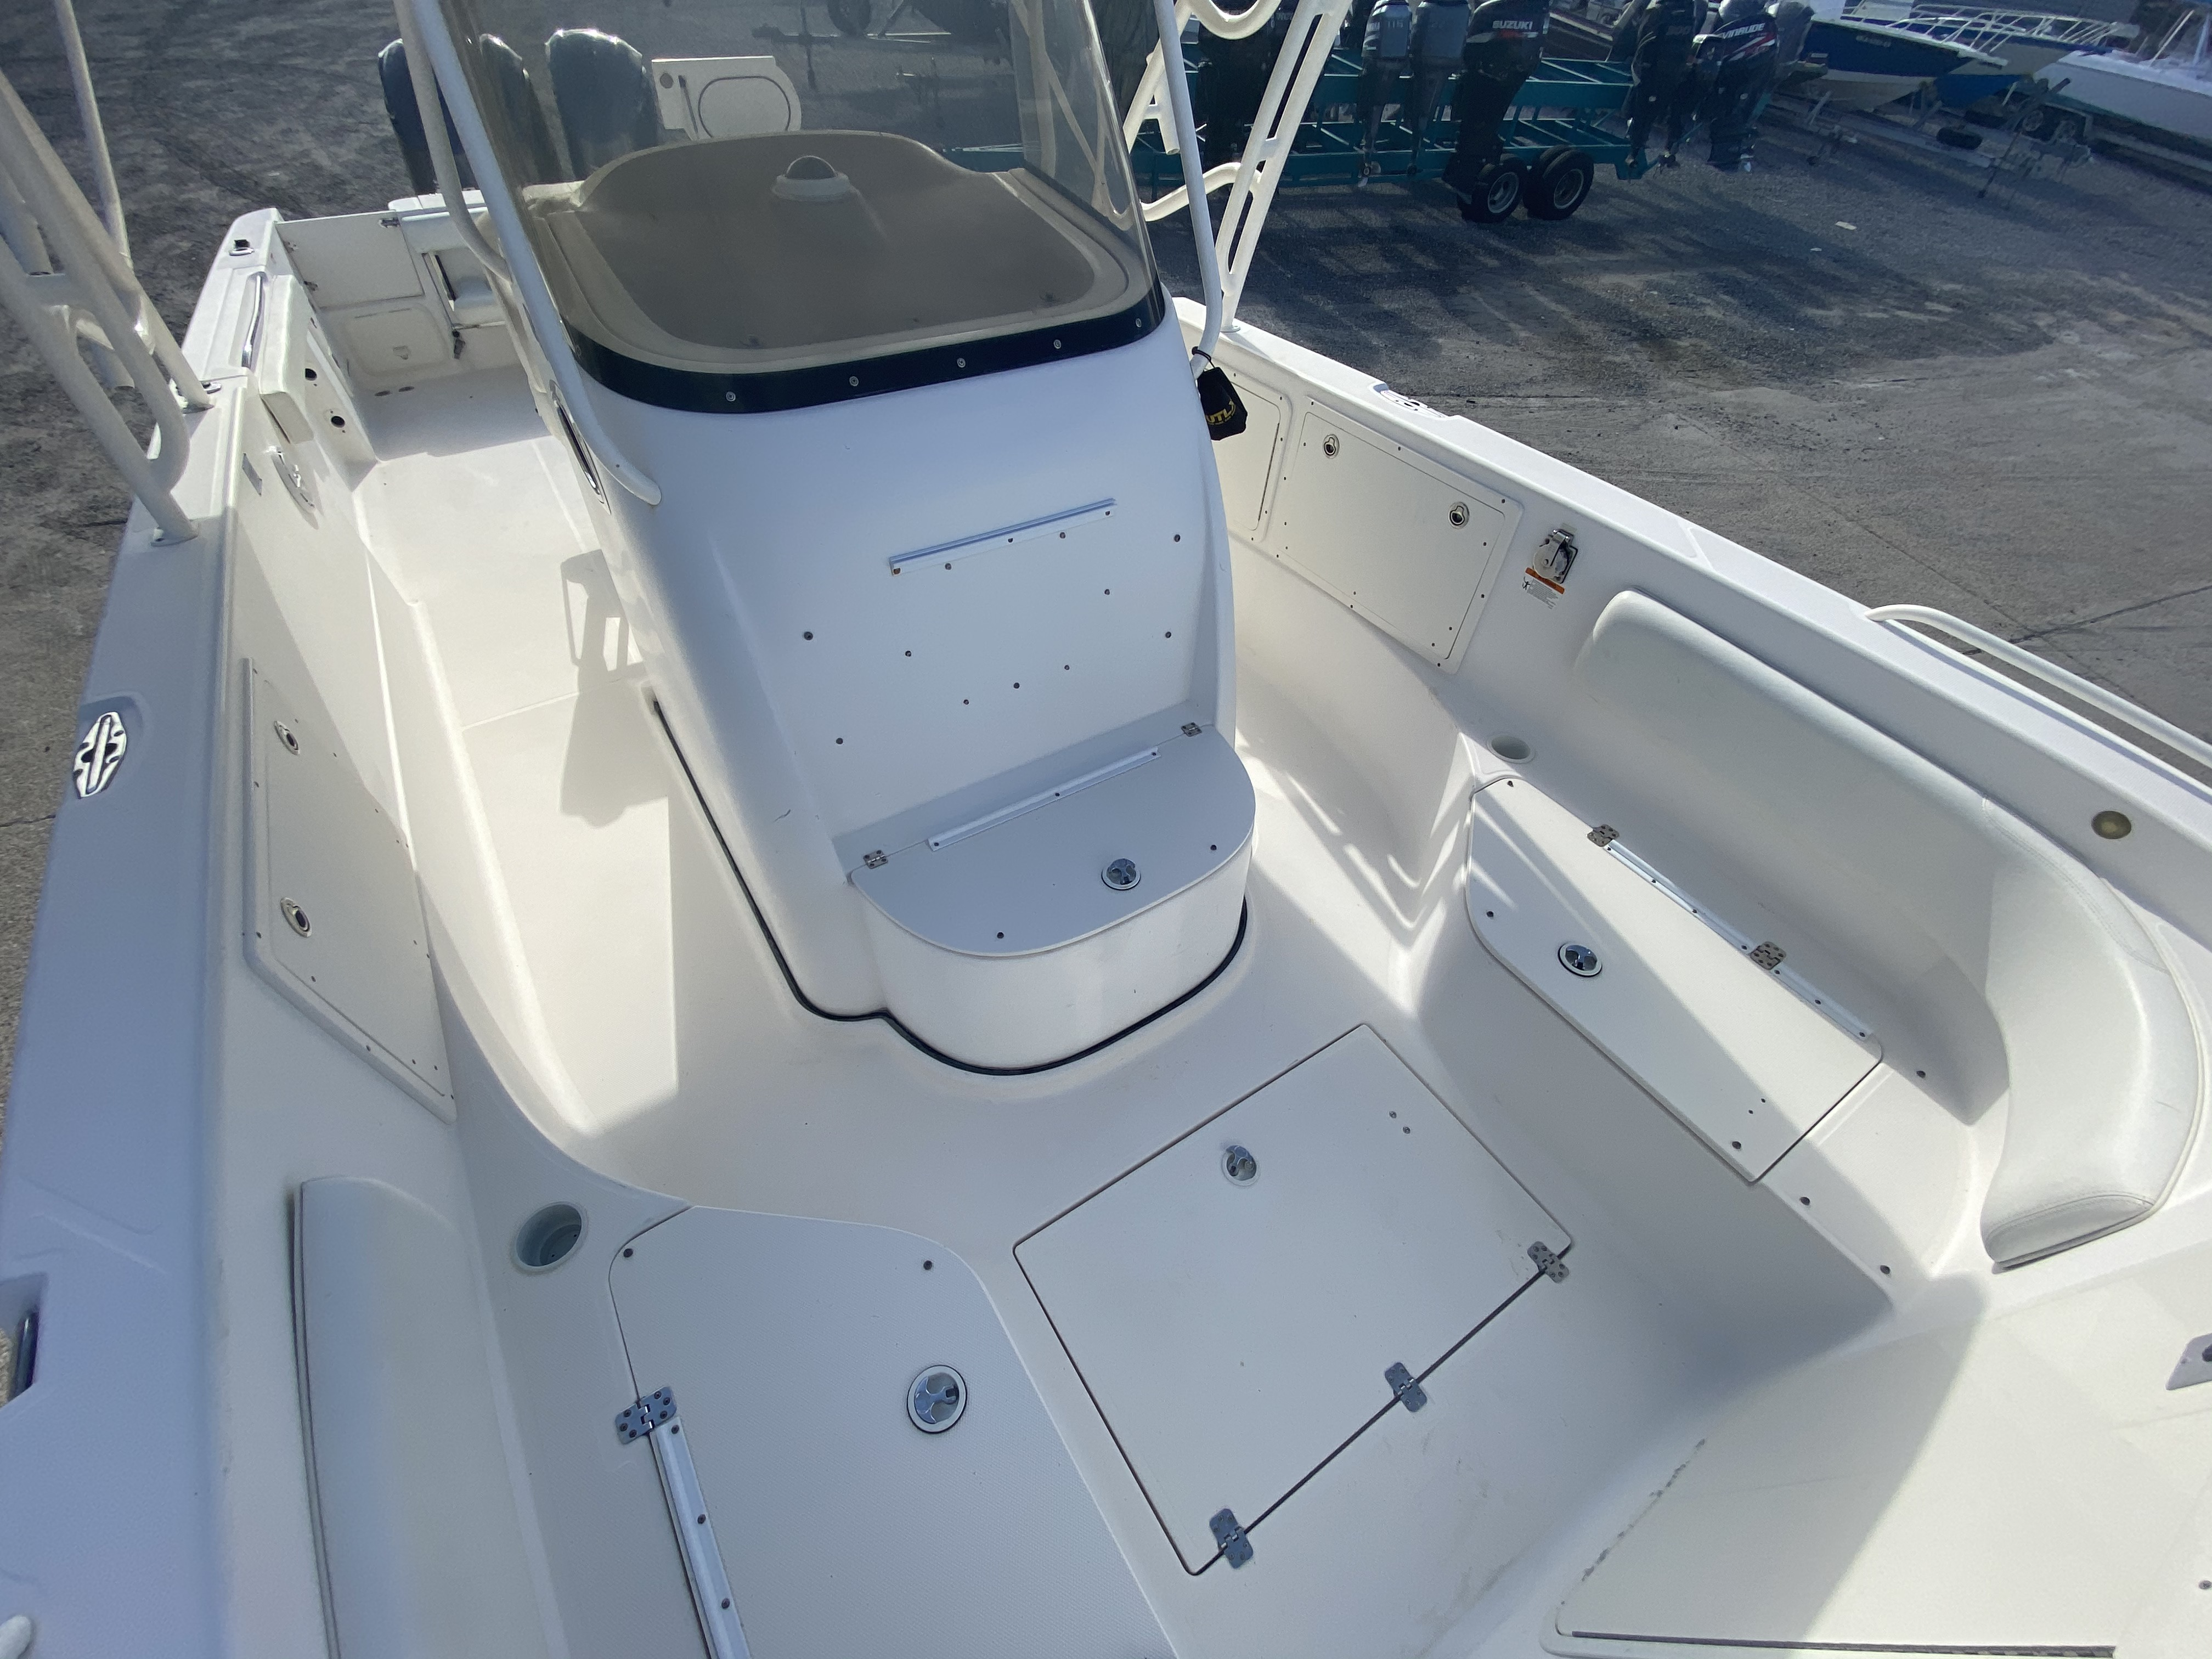 2006 Wellcraft boat for sale, model of the boat is 352 Sport & Image # 27 of 27